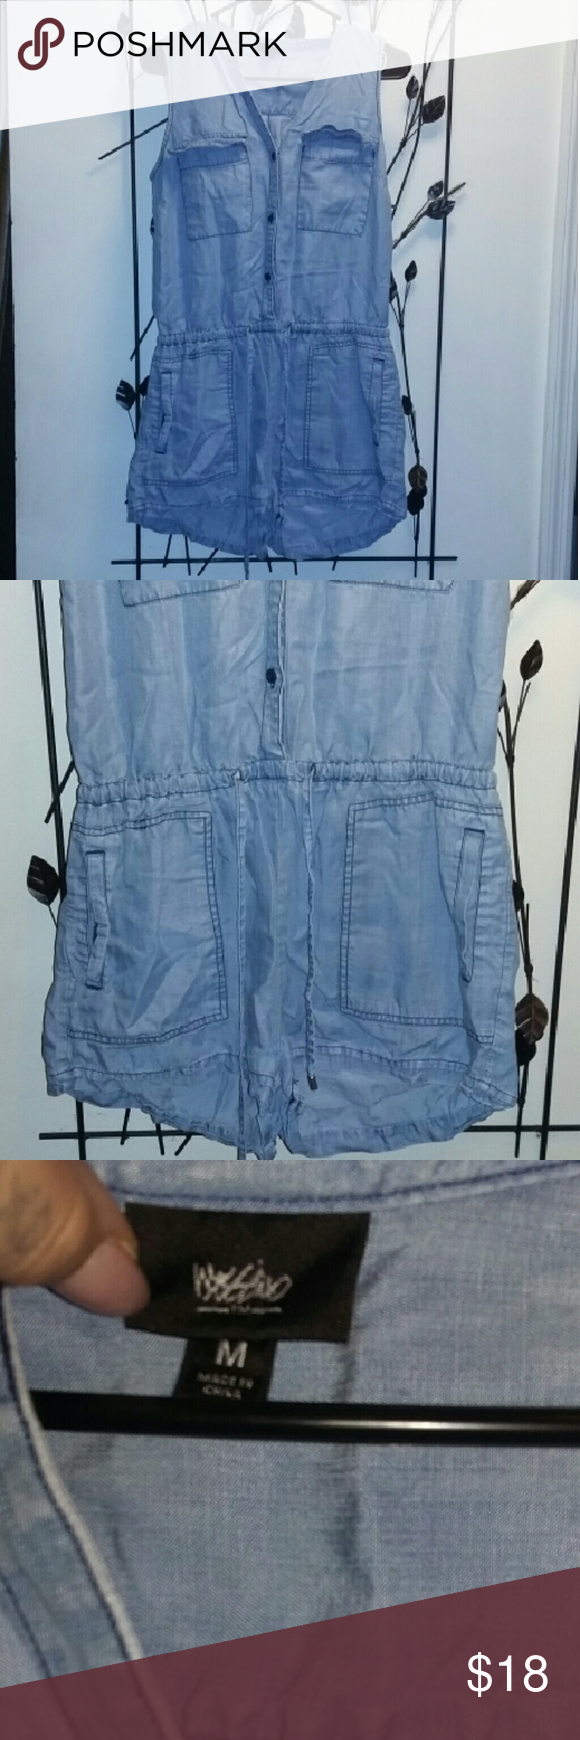 5d870a9a448 ... don t do this romper justice. Very comfortable. Some stretch. Gentle  worn twice. In excellent condition. Mossimo Supply Co. Pants Jumpsuits    Rompers